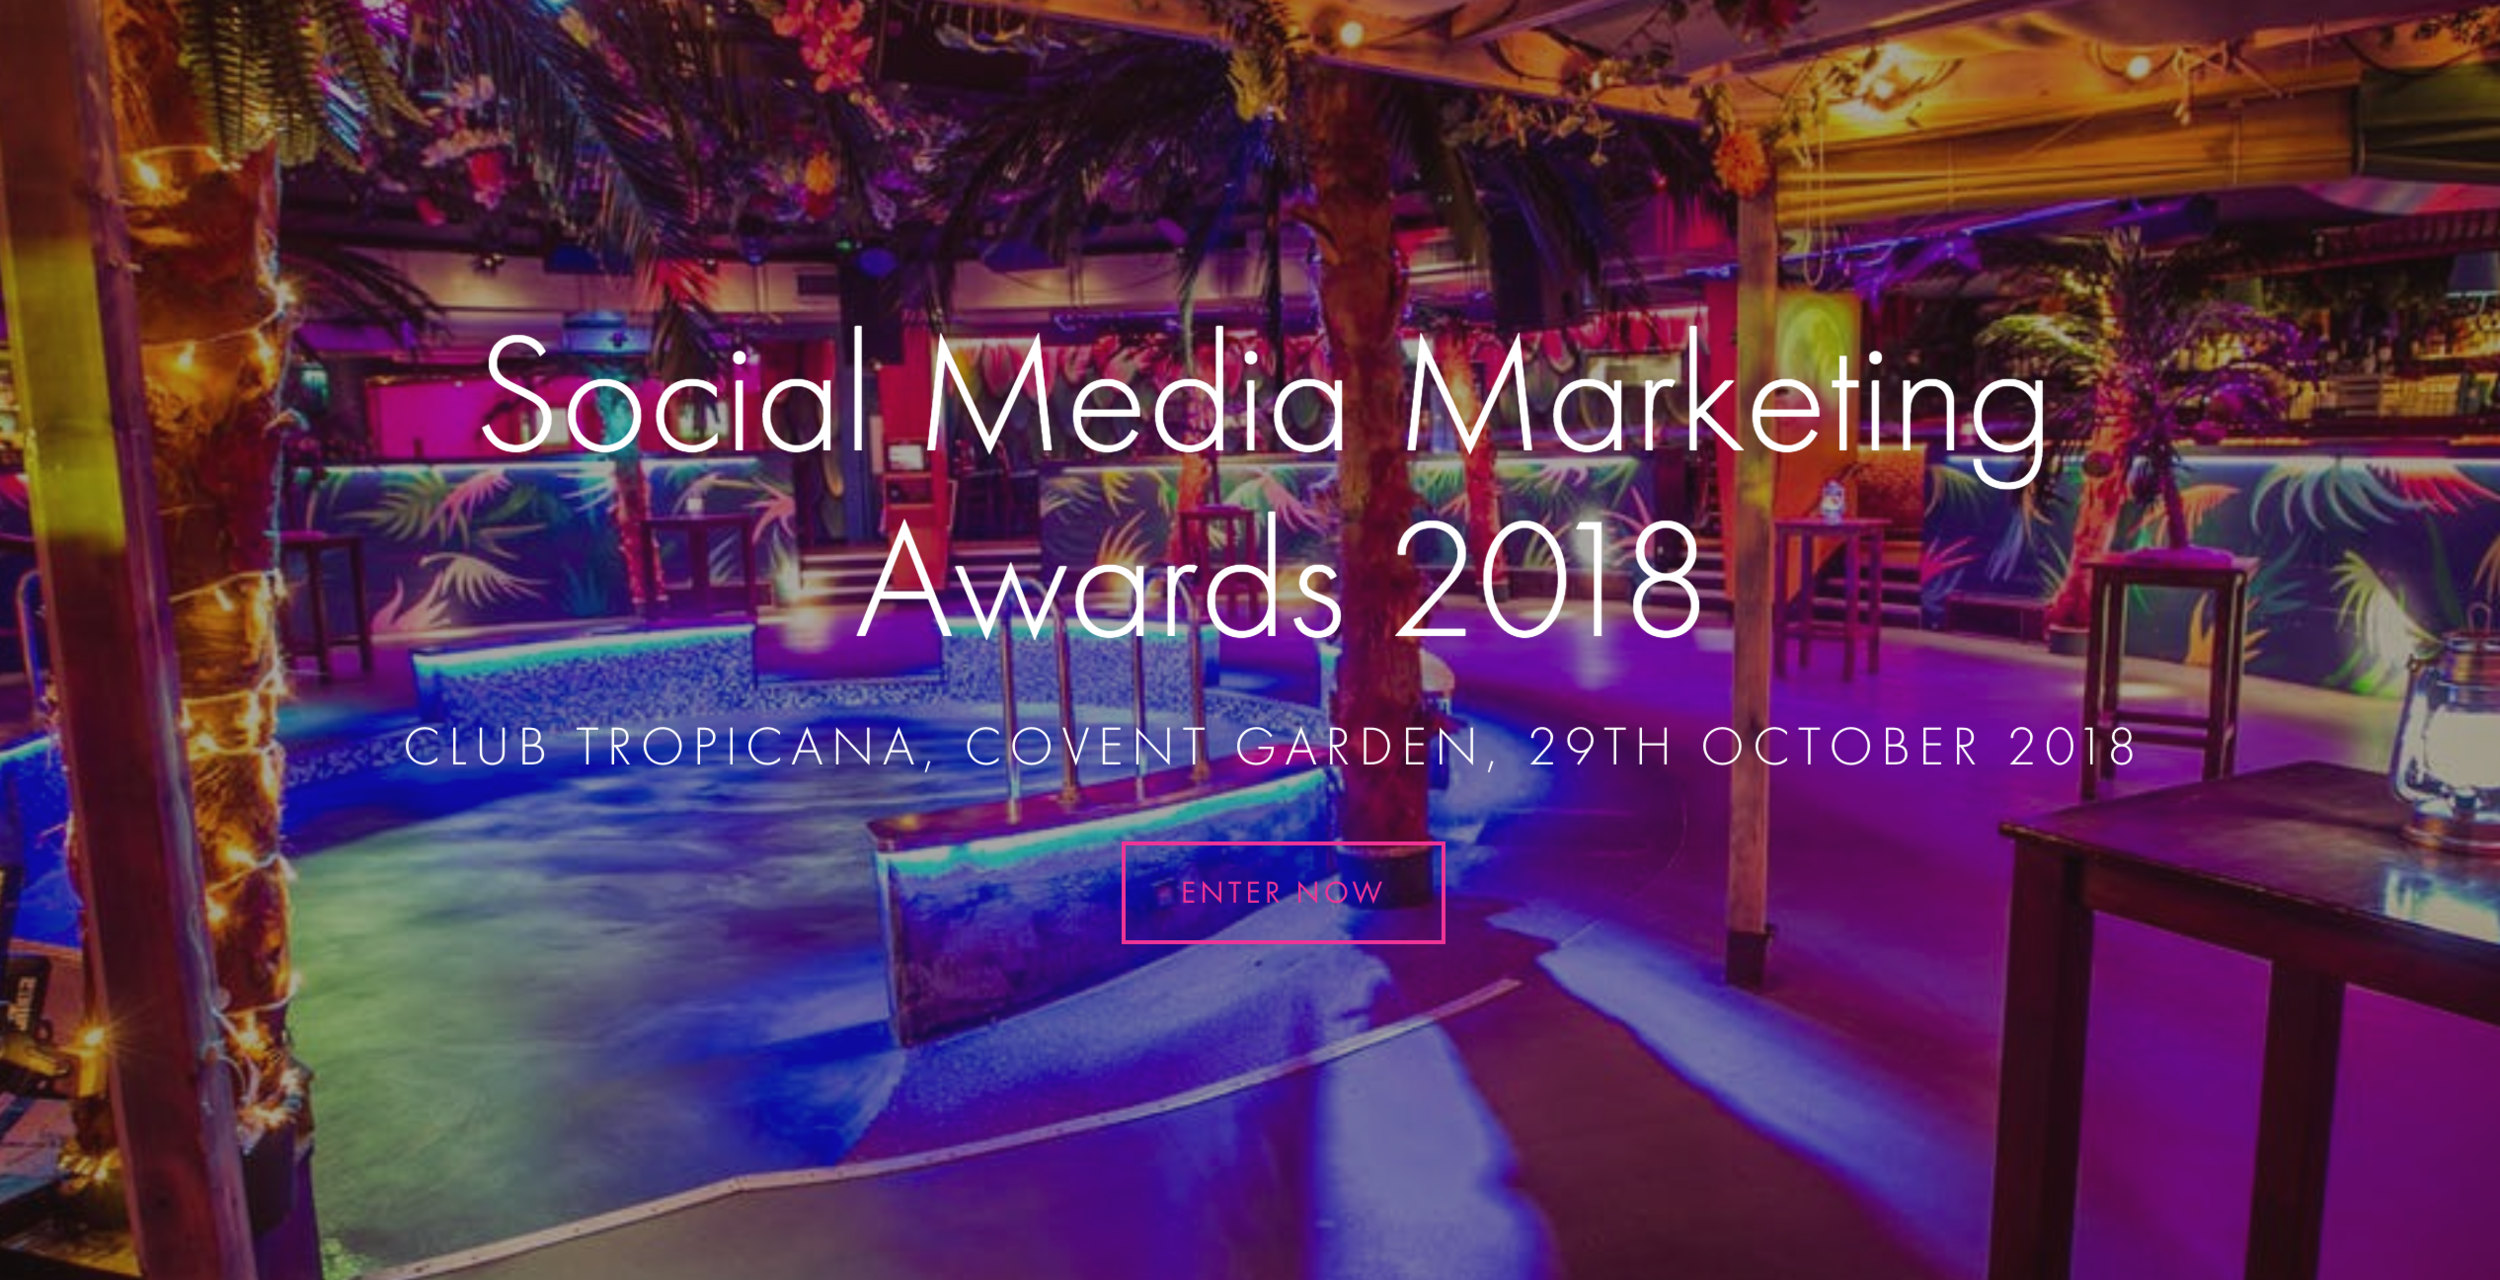 The SocialDay Social Media Marketing Awards have been crafted in the same way our SocialDayUK social media festival has been created. With you in mind! Our categories reflect what is actually happening within Social Media Marketing, our awards are platform agnostic as we recognise that majority of social media campaigns are multi platform affairs, you don't plan your campaigns in silos so we don't judge them that way!